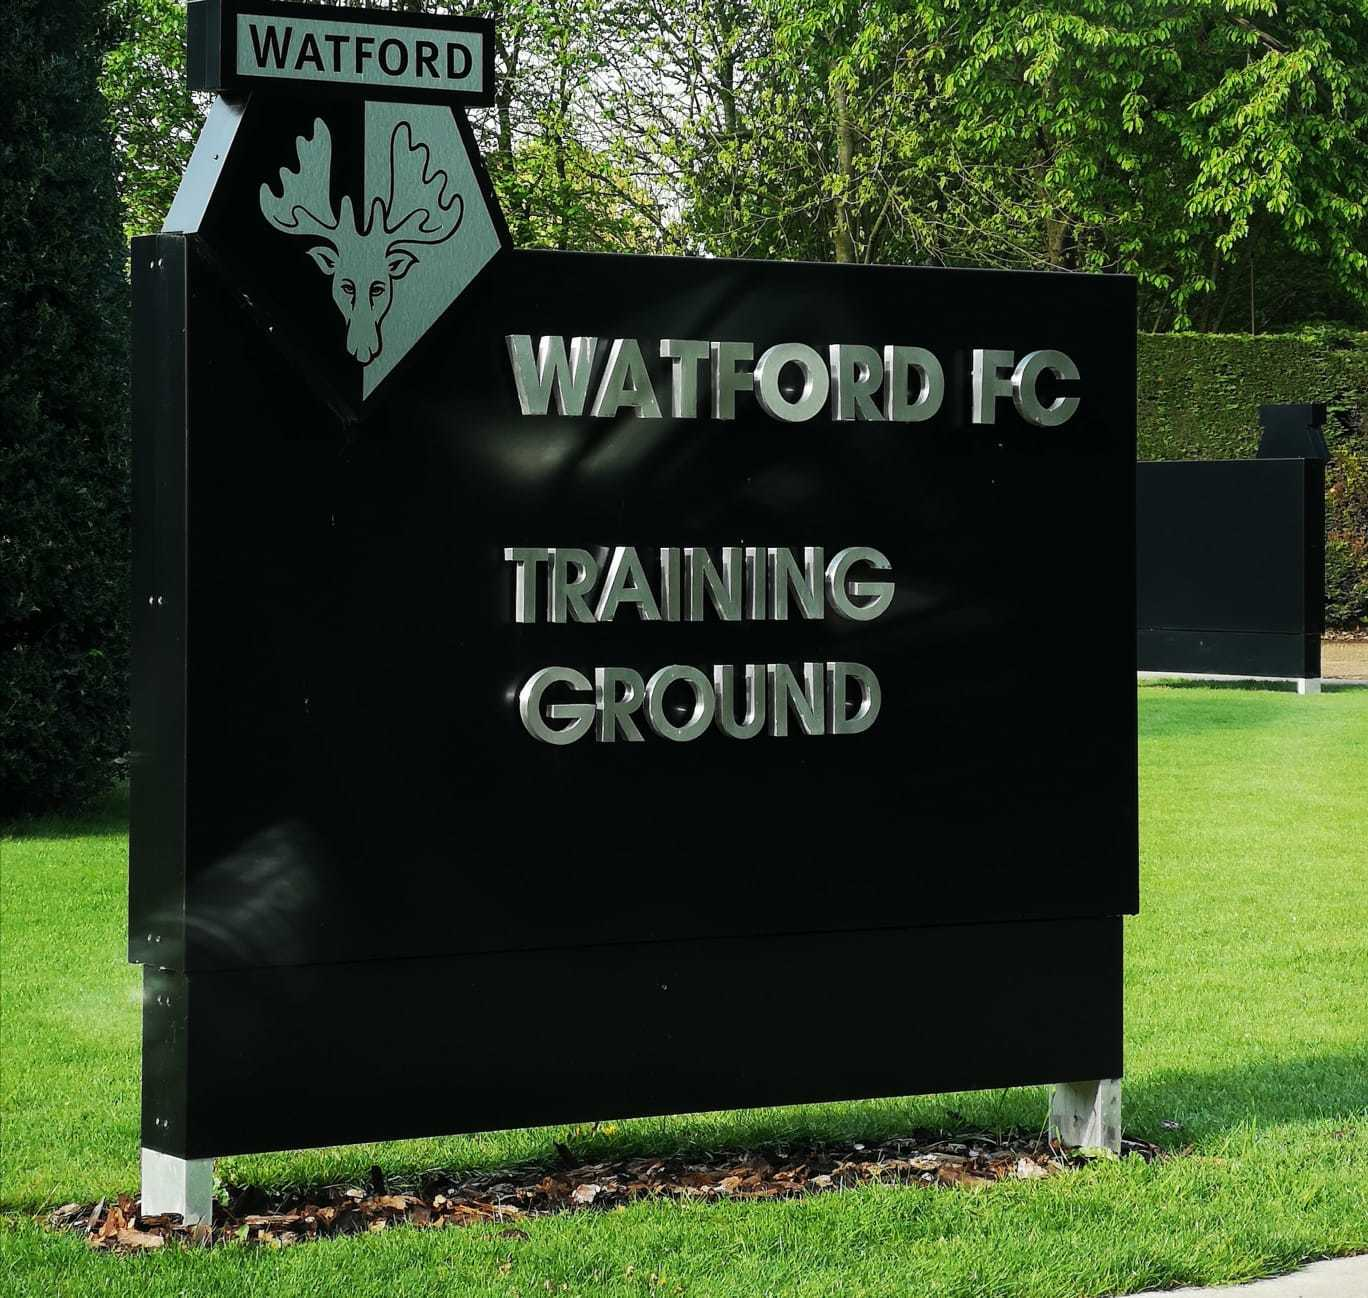 Watford will soon return to contact training after Premier League shareholders vote in meeting